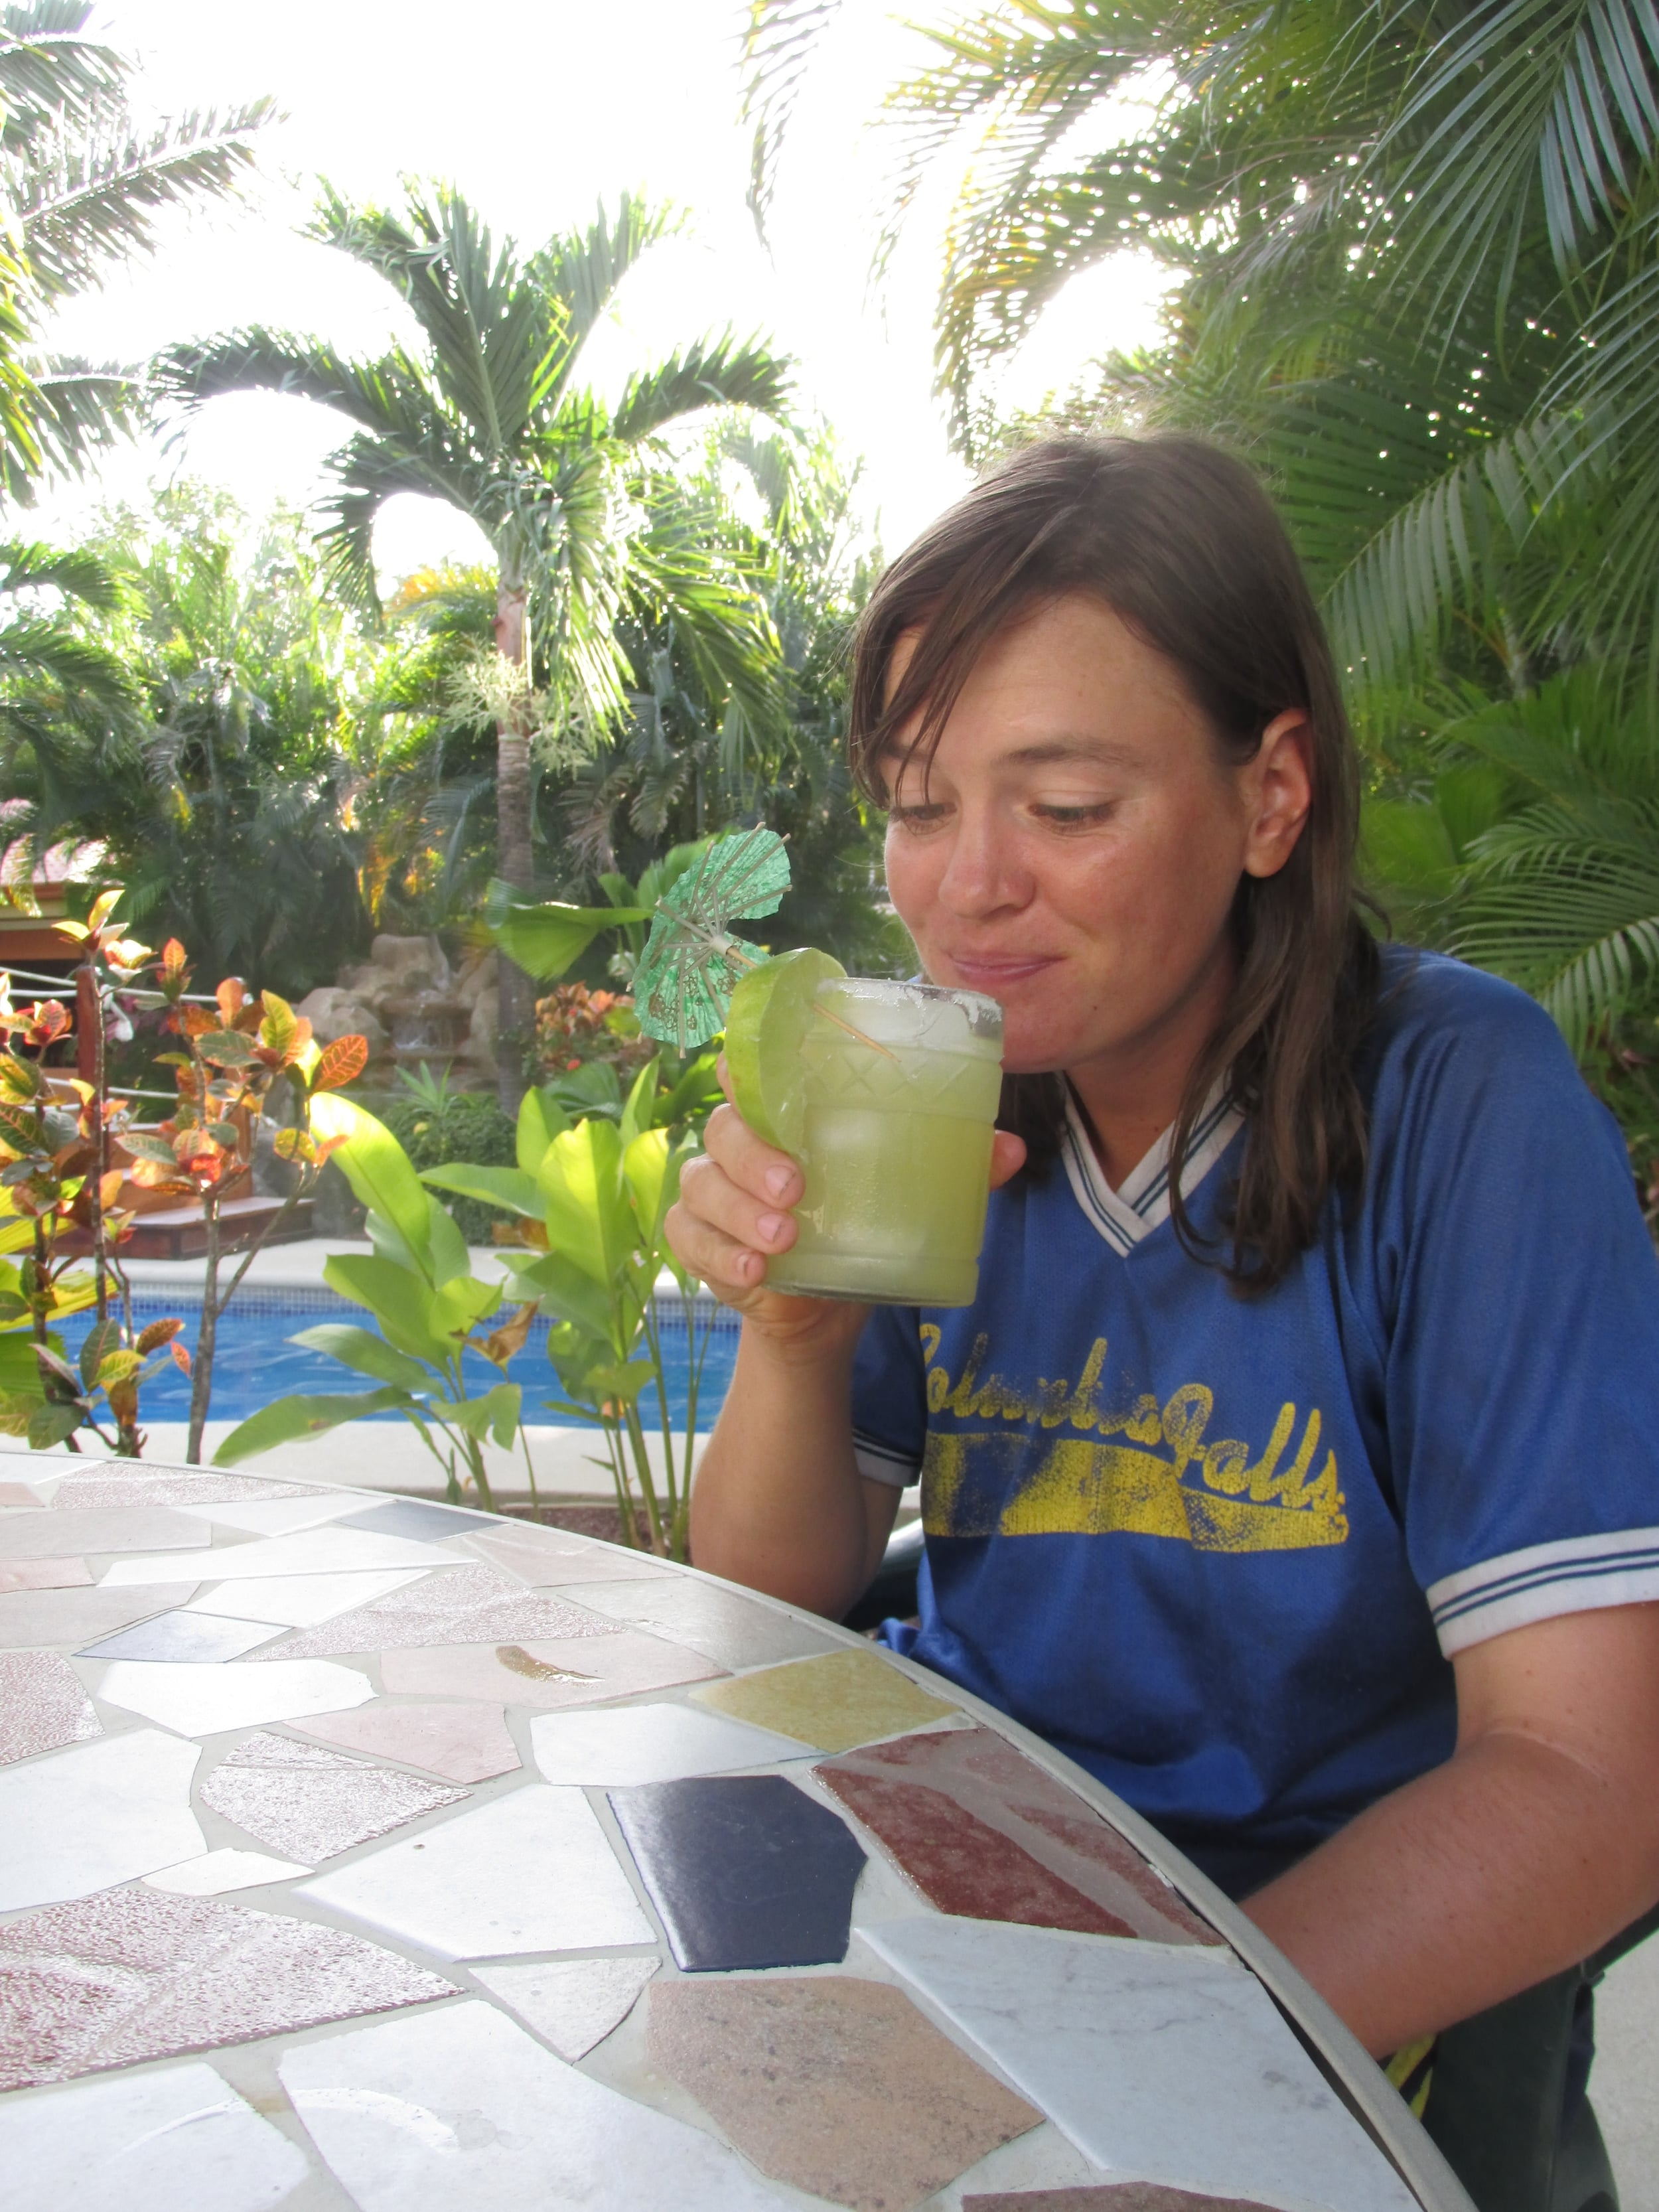 Costa Rica can be expensive, but once in awhile one needs a bit of luxury, maybe even a margarita.